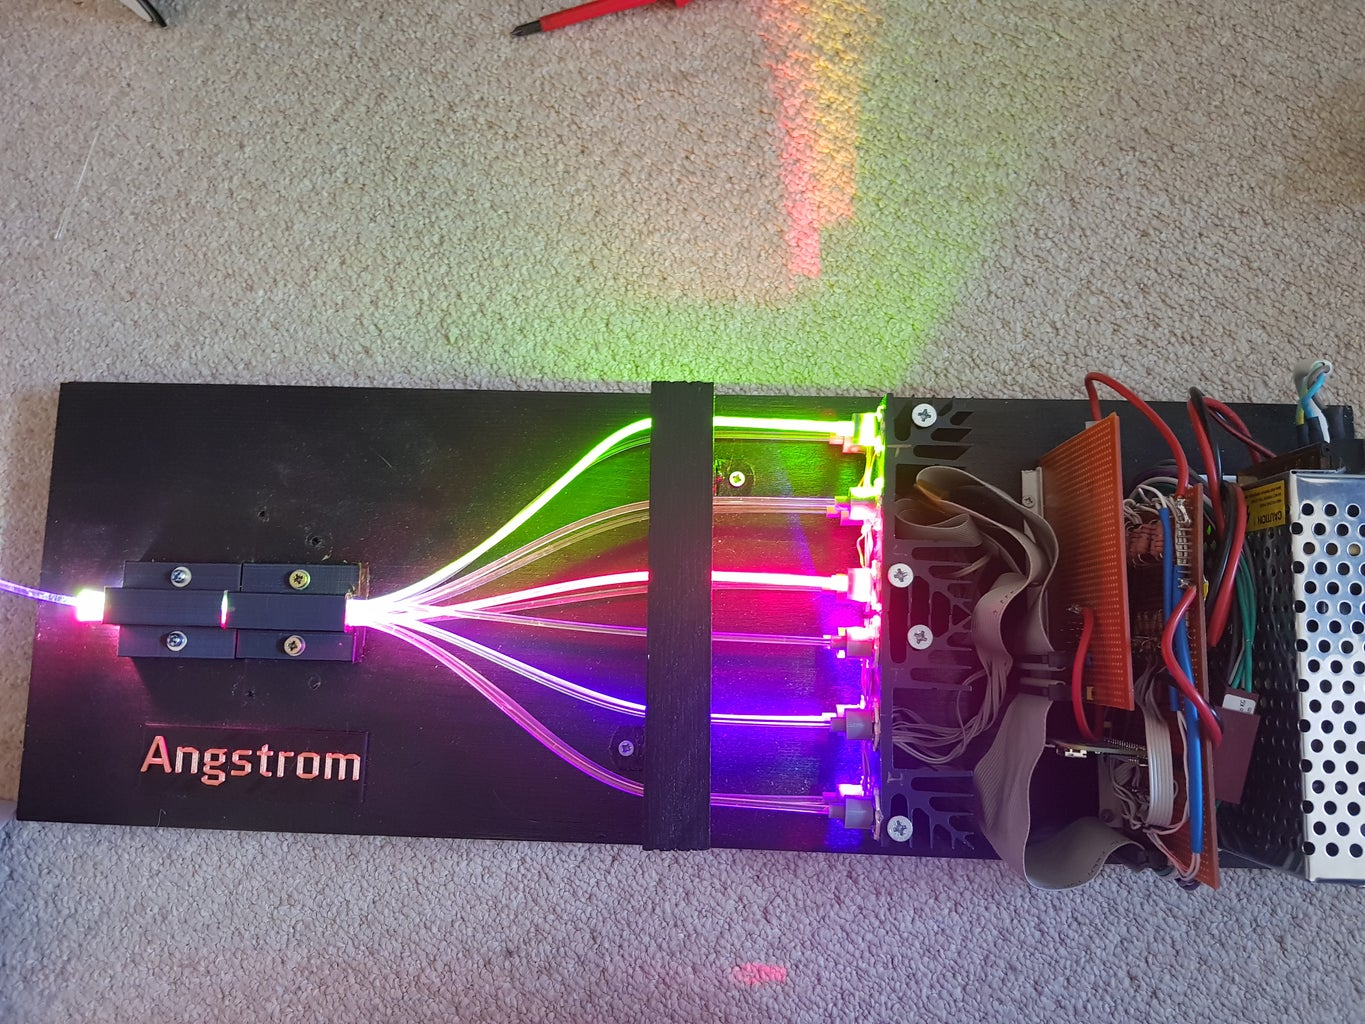 Angstrom - a Tuneable LED Light Source